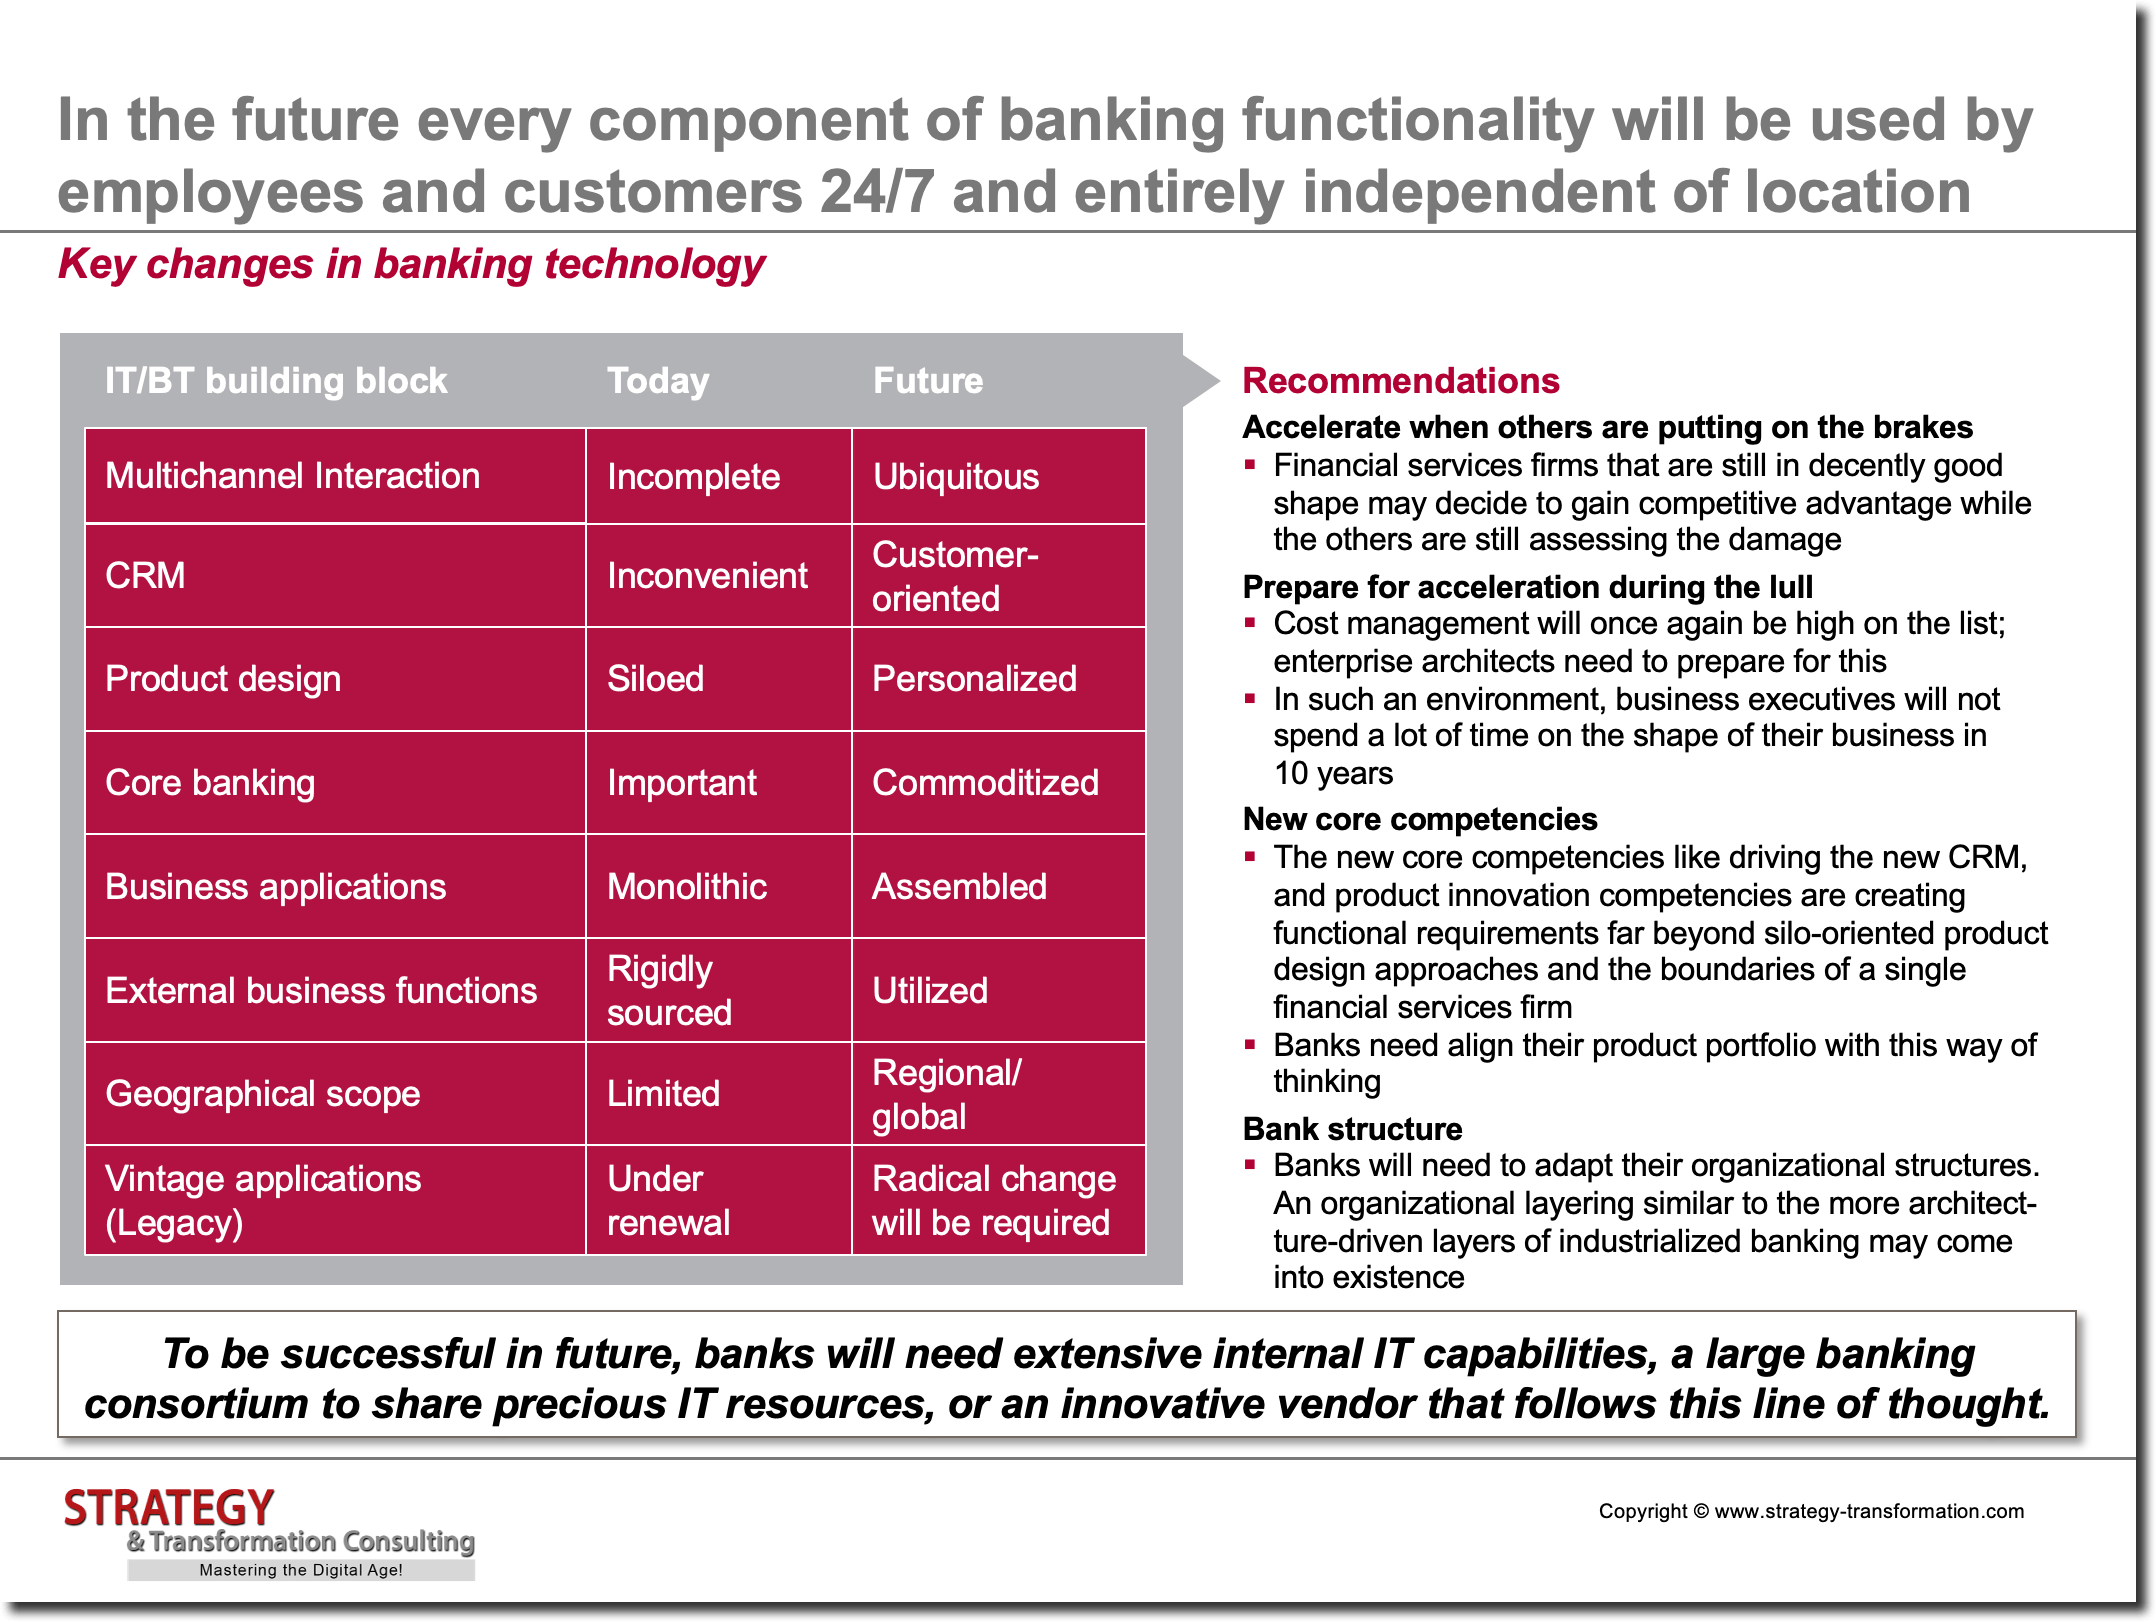 Key changes in banking technology